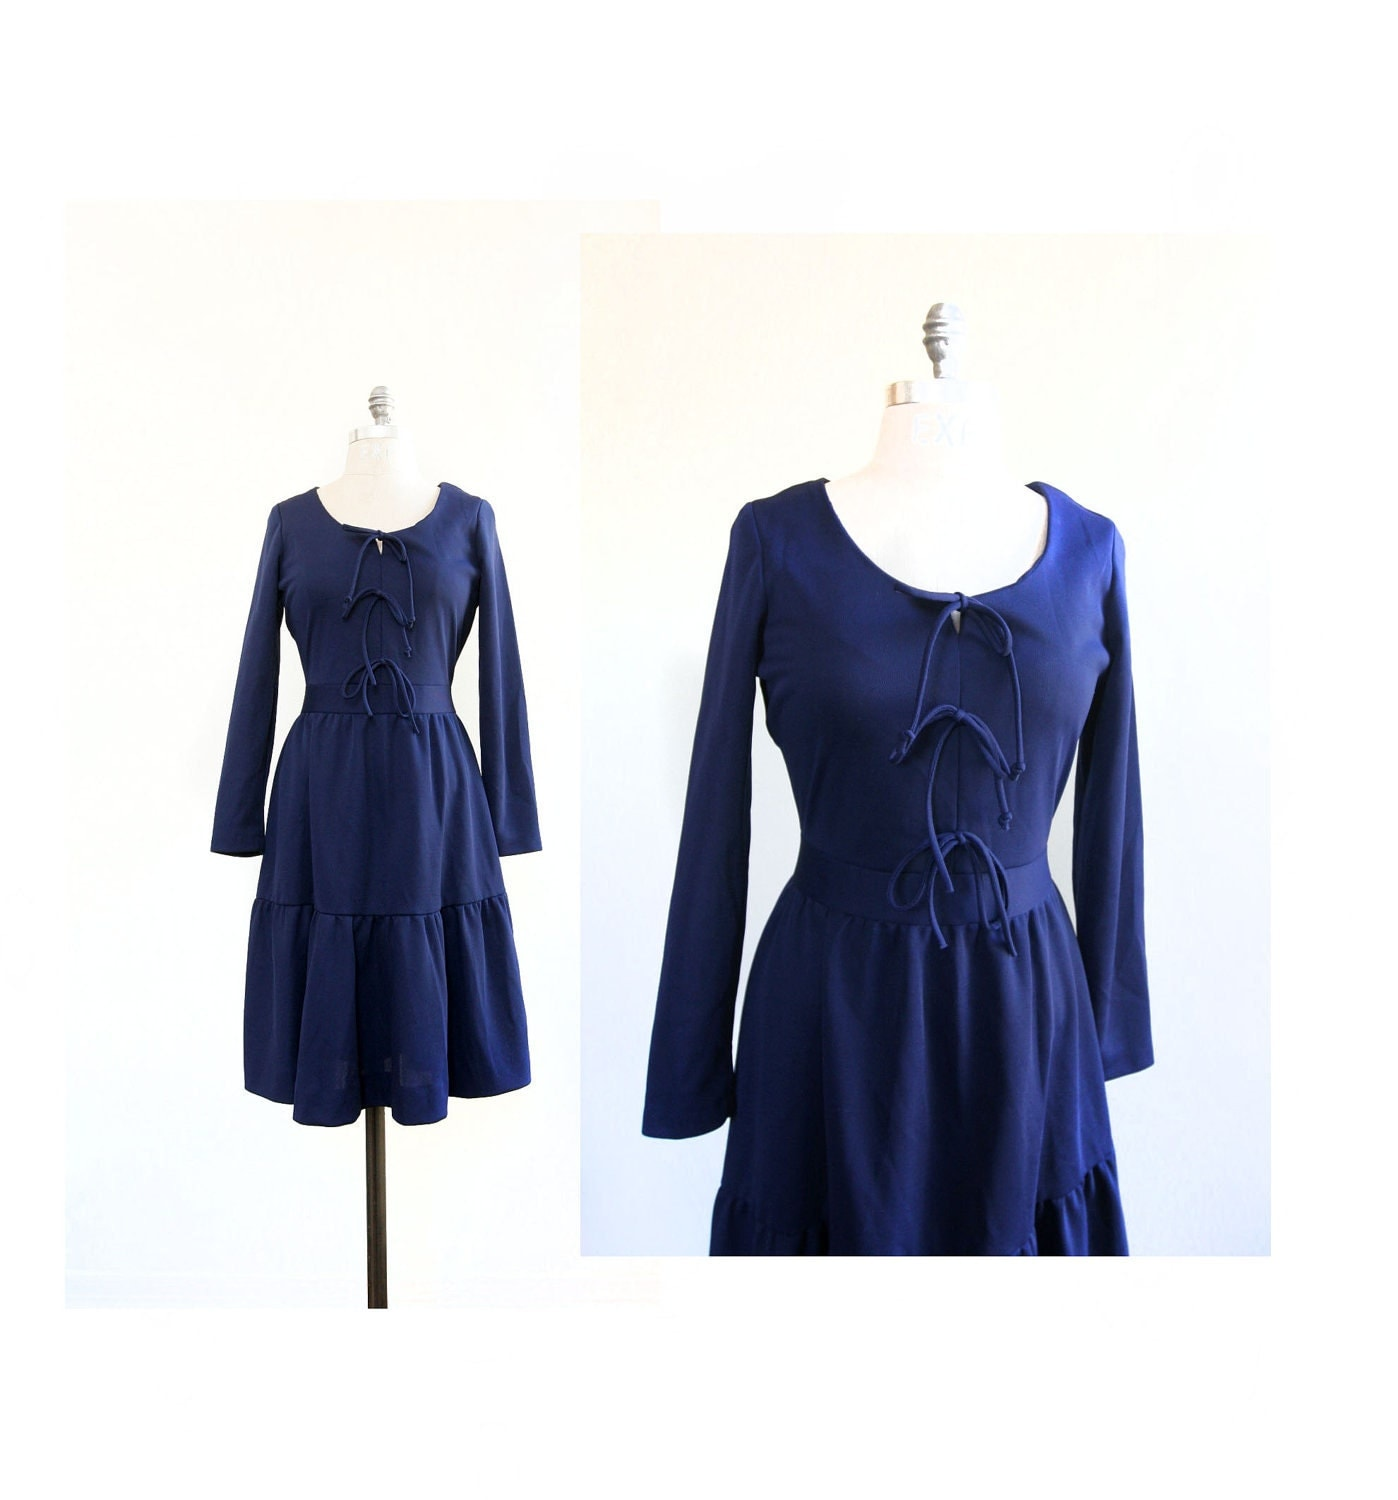 bow dress 1960s navy blue dress by dingaling on etsy